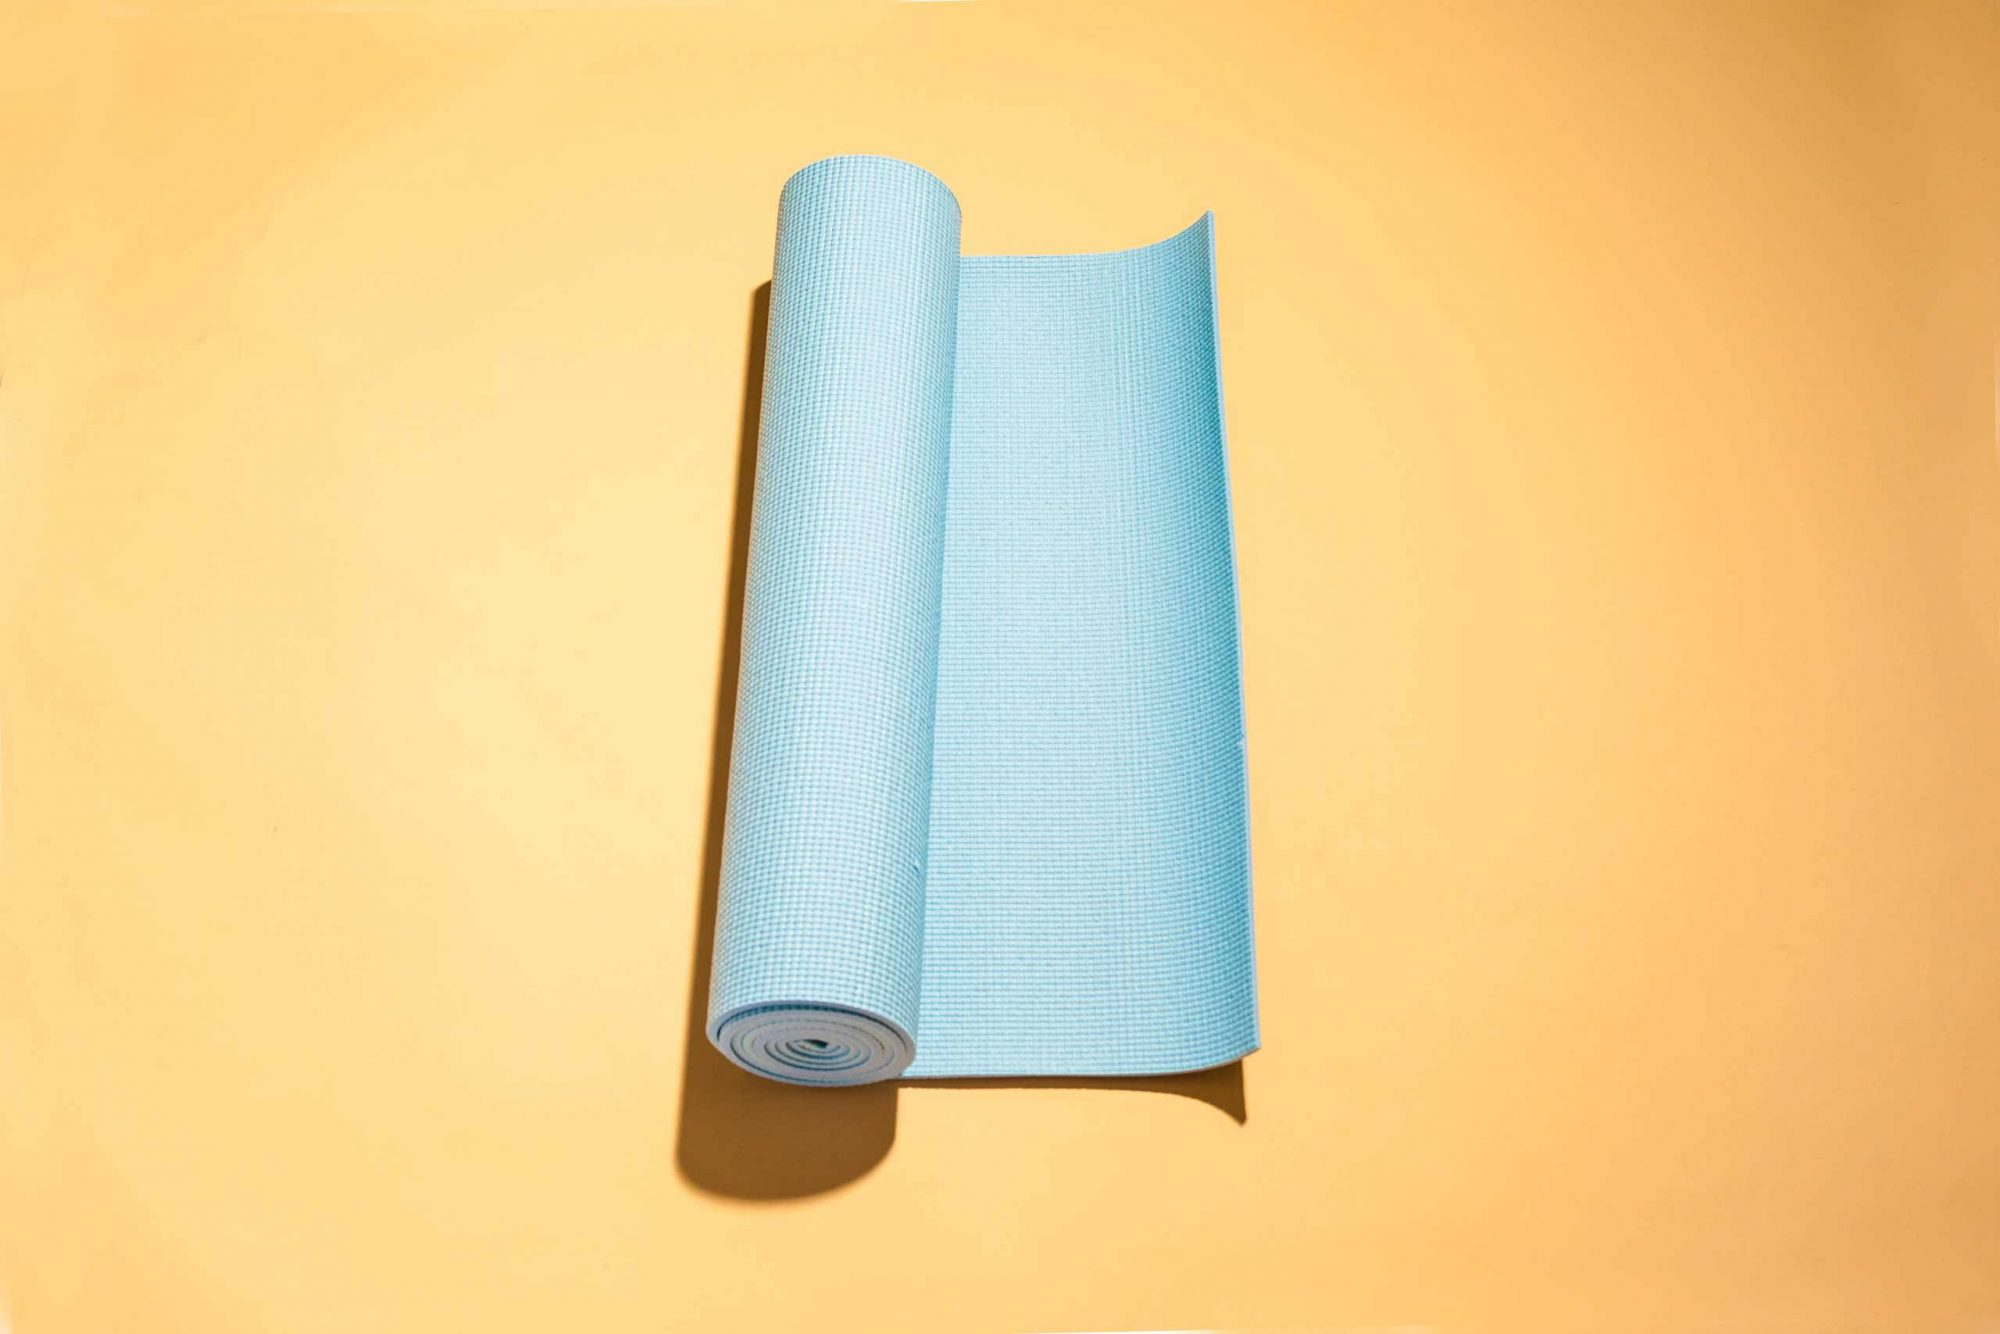 TIME.com stock photos Weight Loss Health Exercise Yoga Mat